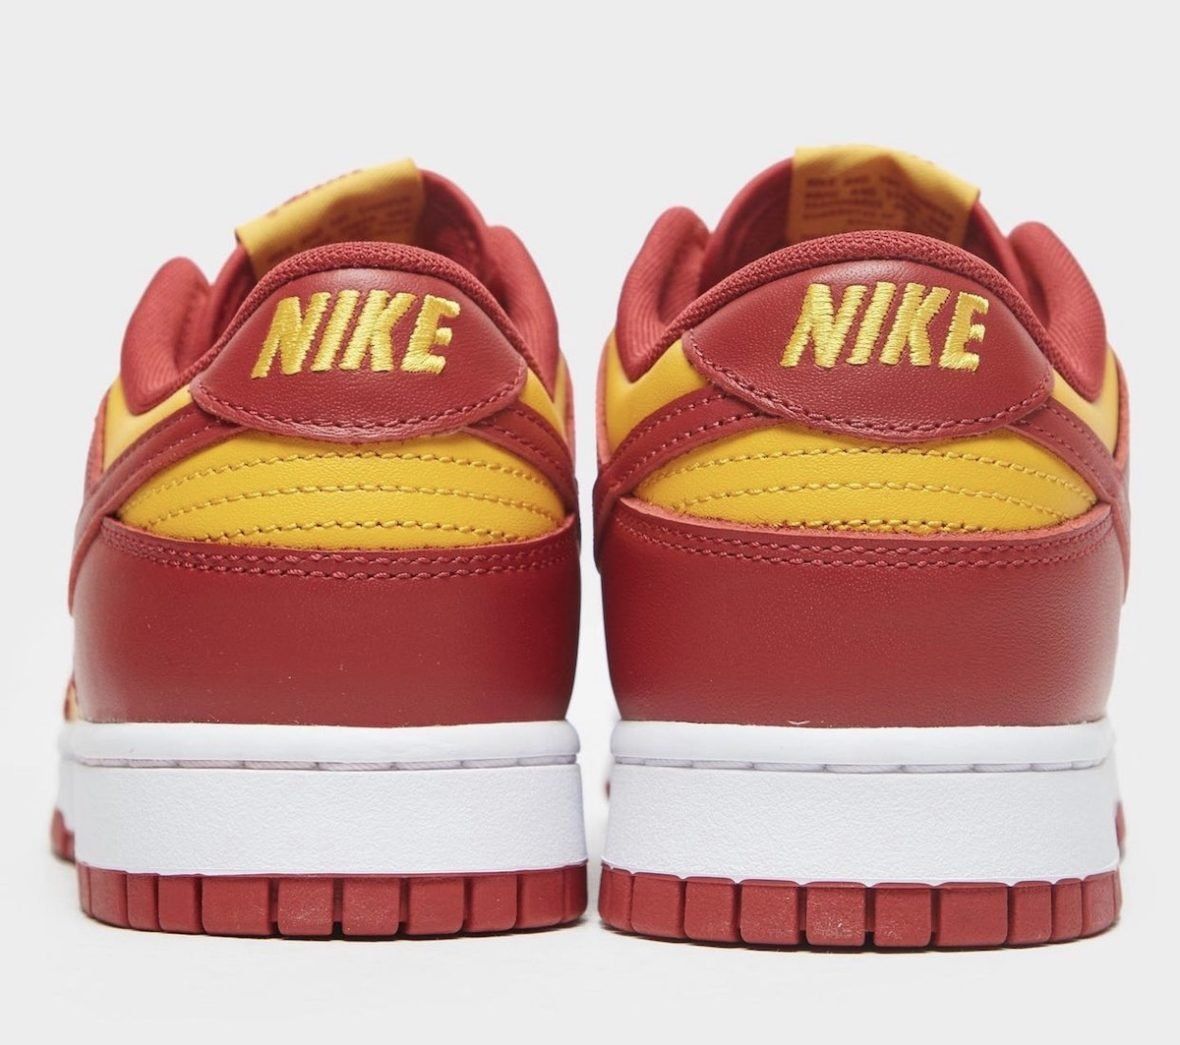 Nike-Dunk-Low-Midas-Gold-Tough-Red-White-DD1391-701-Release-Date-3